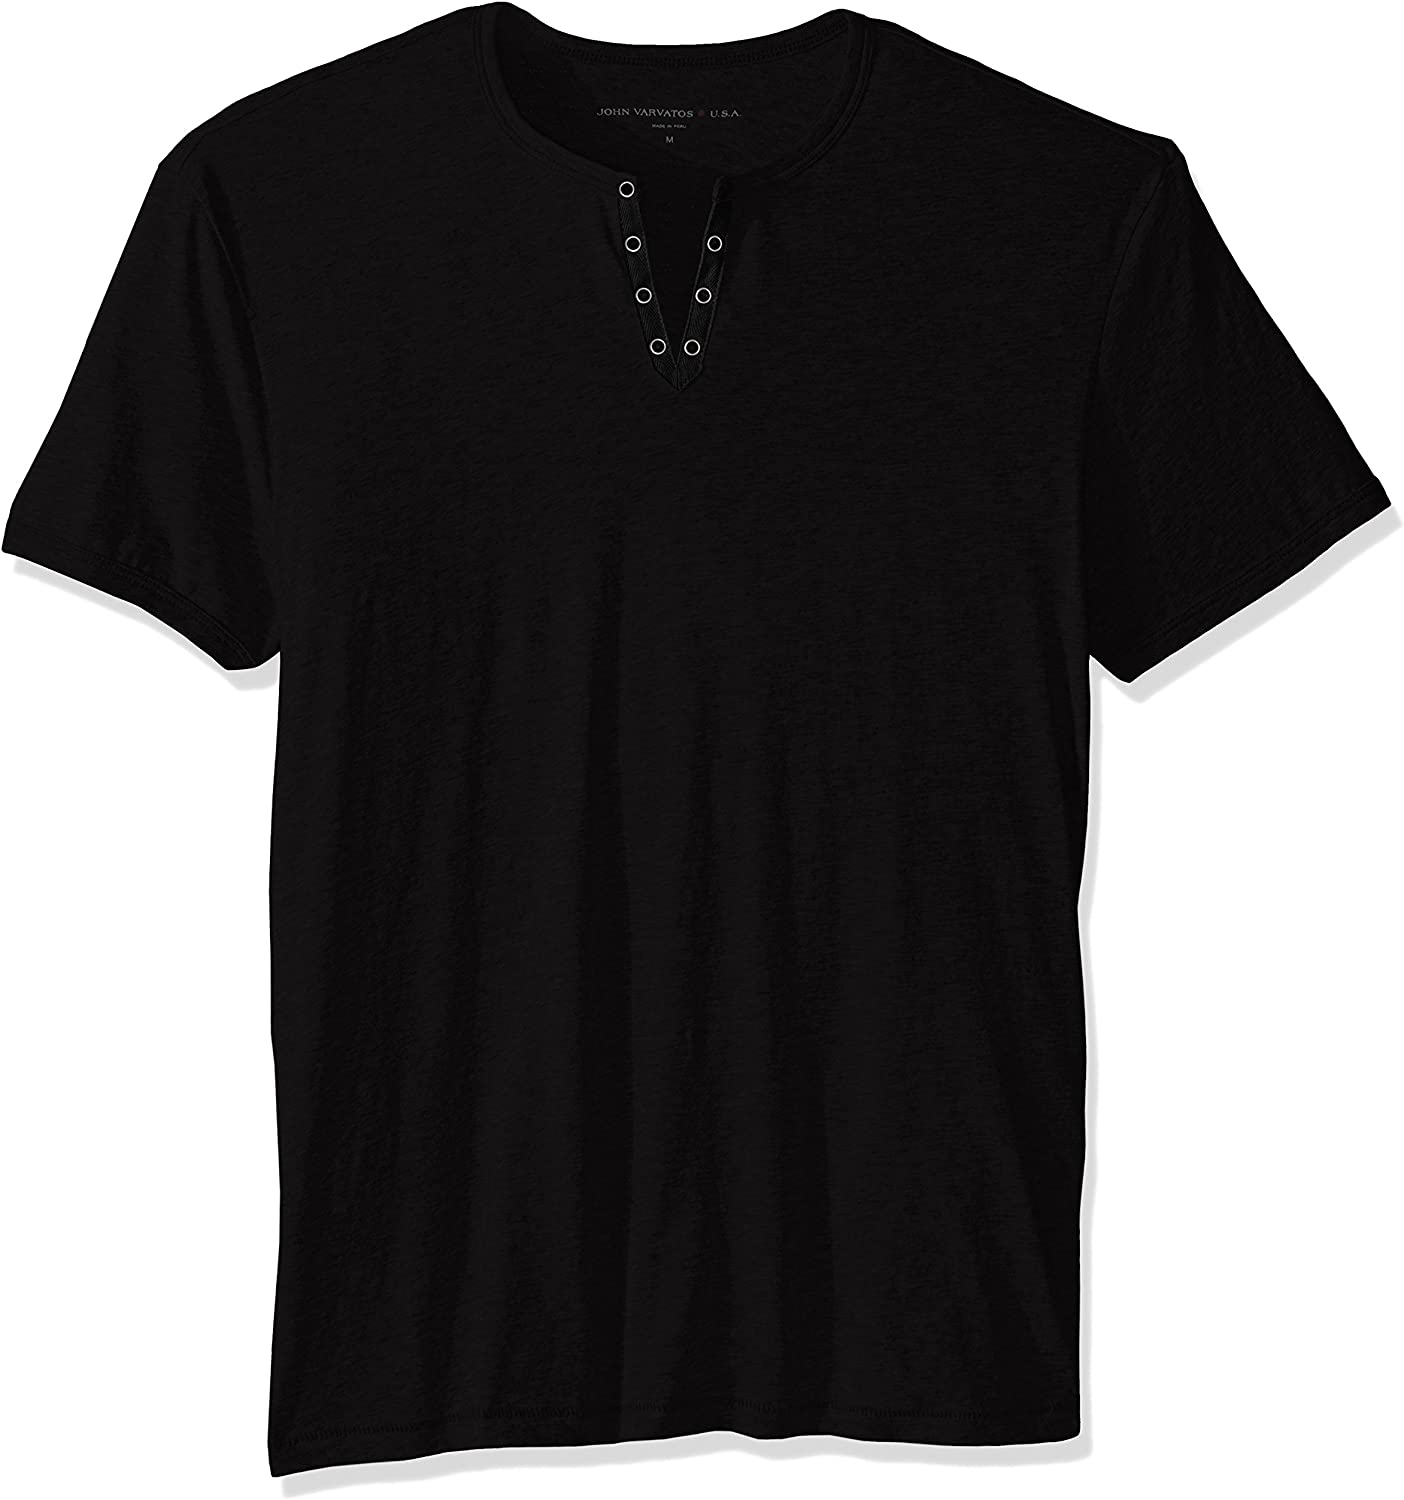 John Varvatos Star USA Men's SHORT SLEEVE EYELET HENLEY SHIRT, Black, Medium